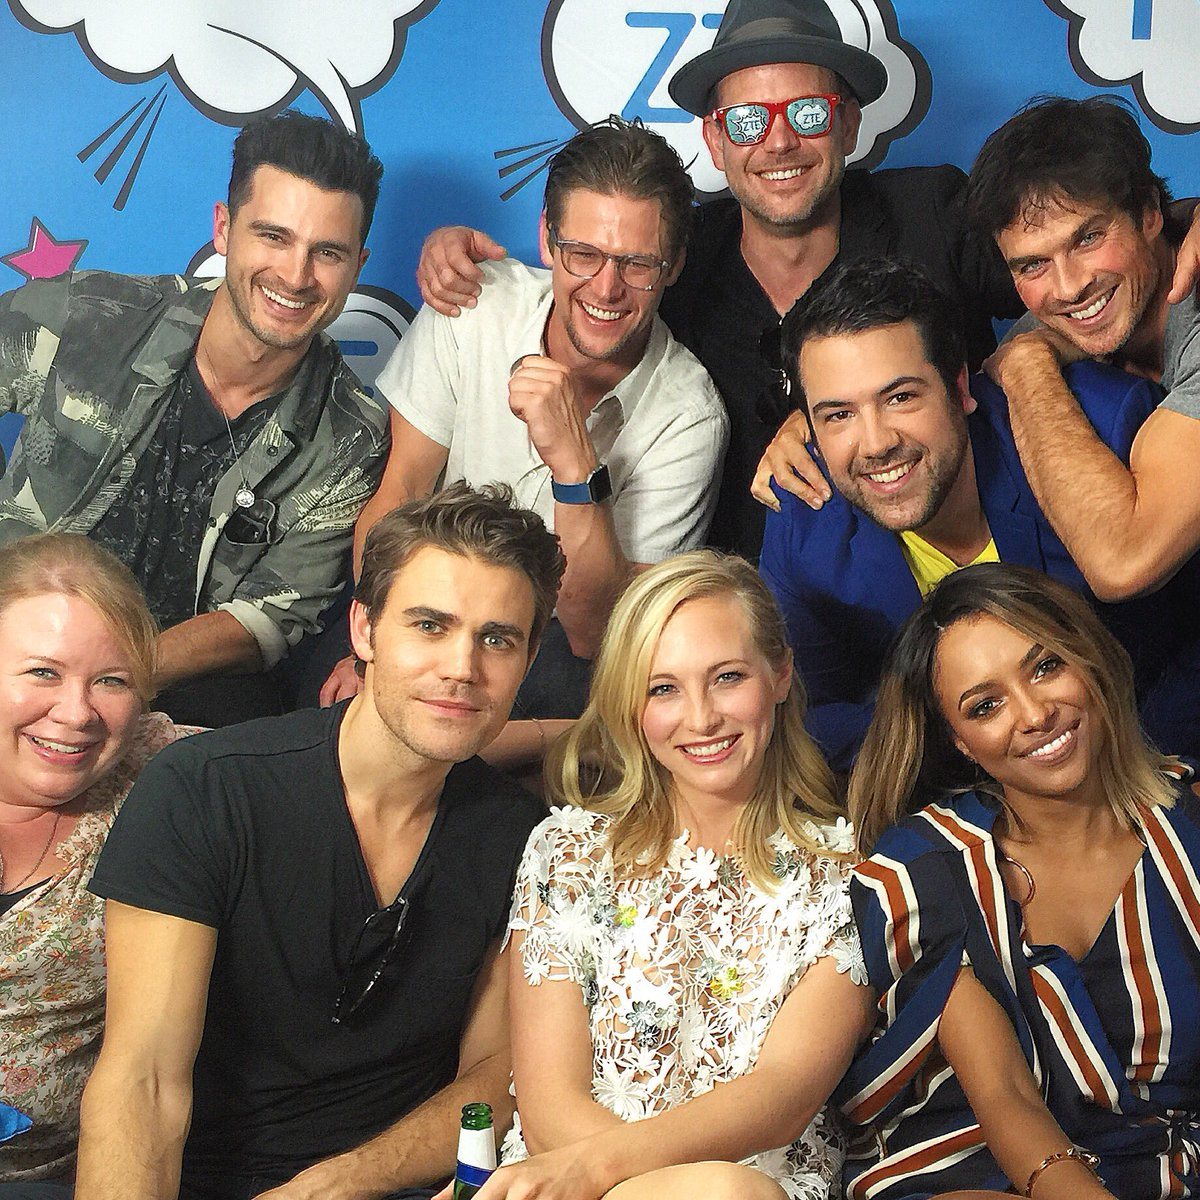 After covering #TVD for 7 years, it was a damn delight snagging the cast for their last-ever #SDCC interview.